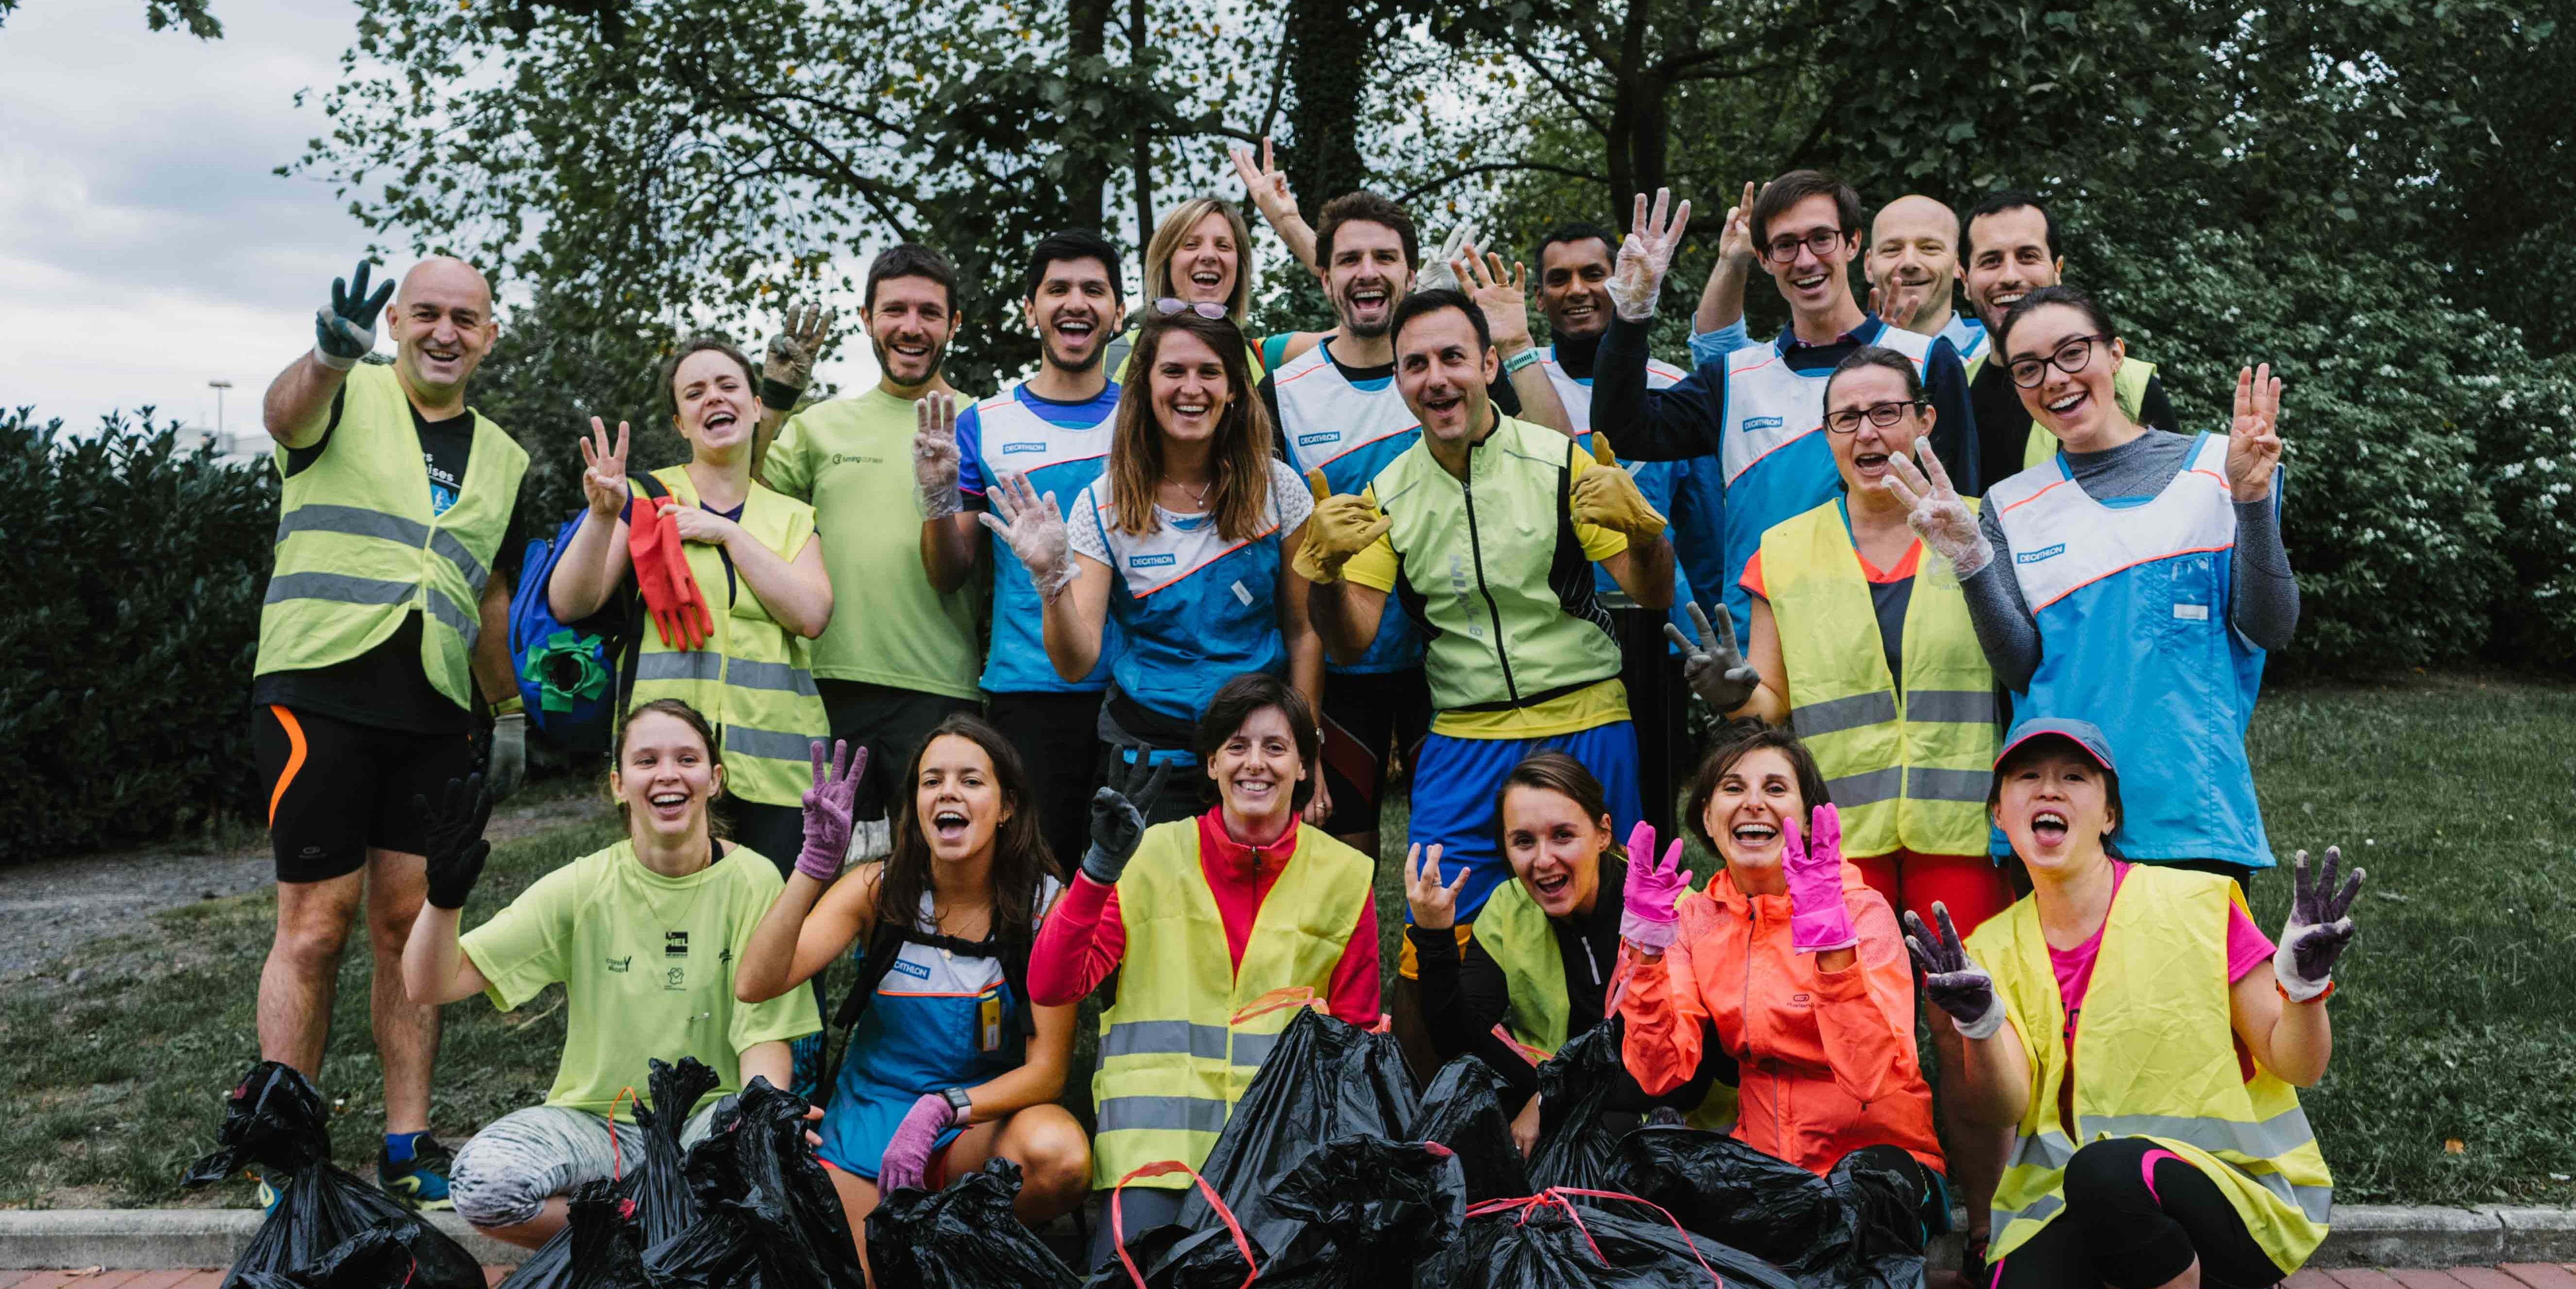 Decathlon does world clean up day!